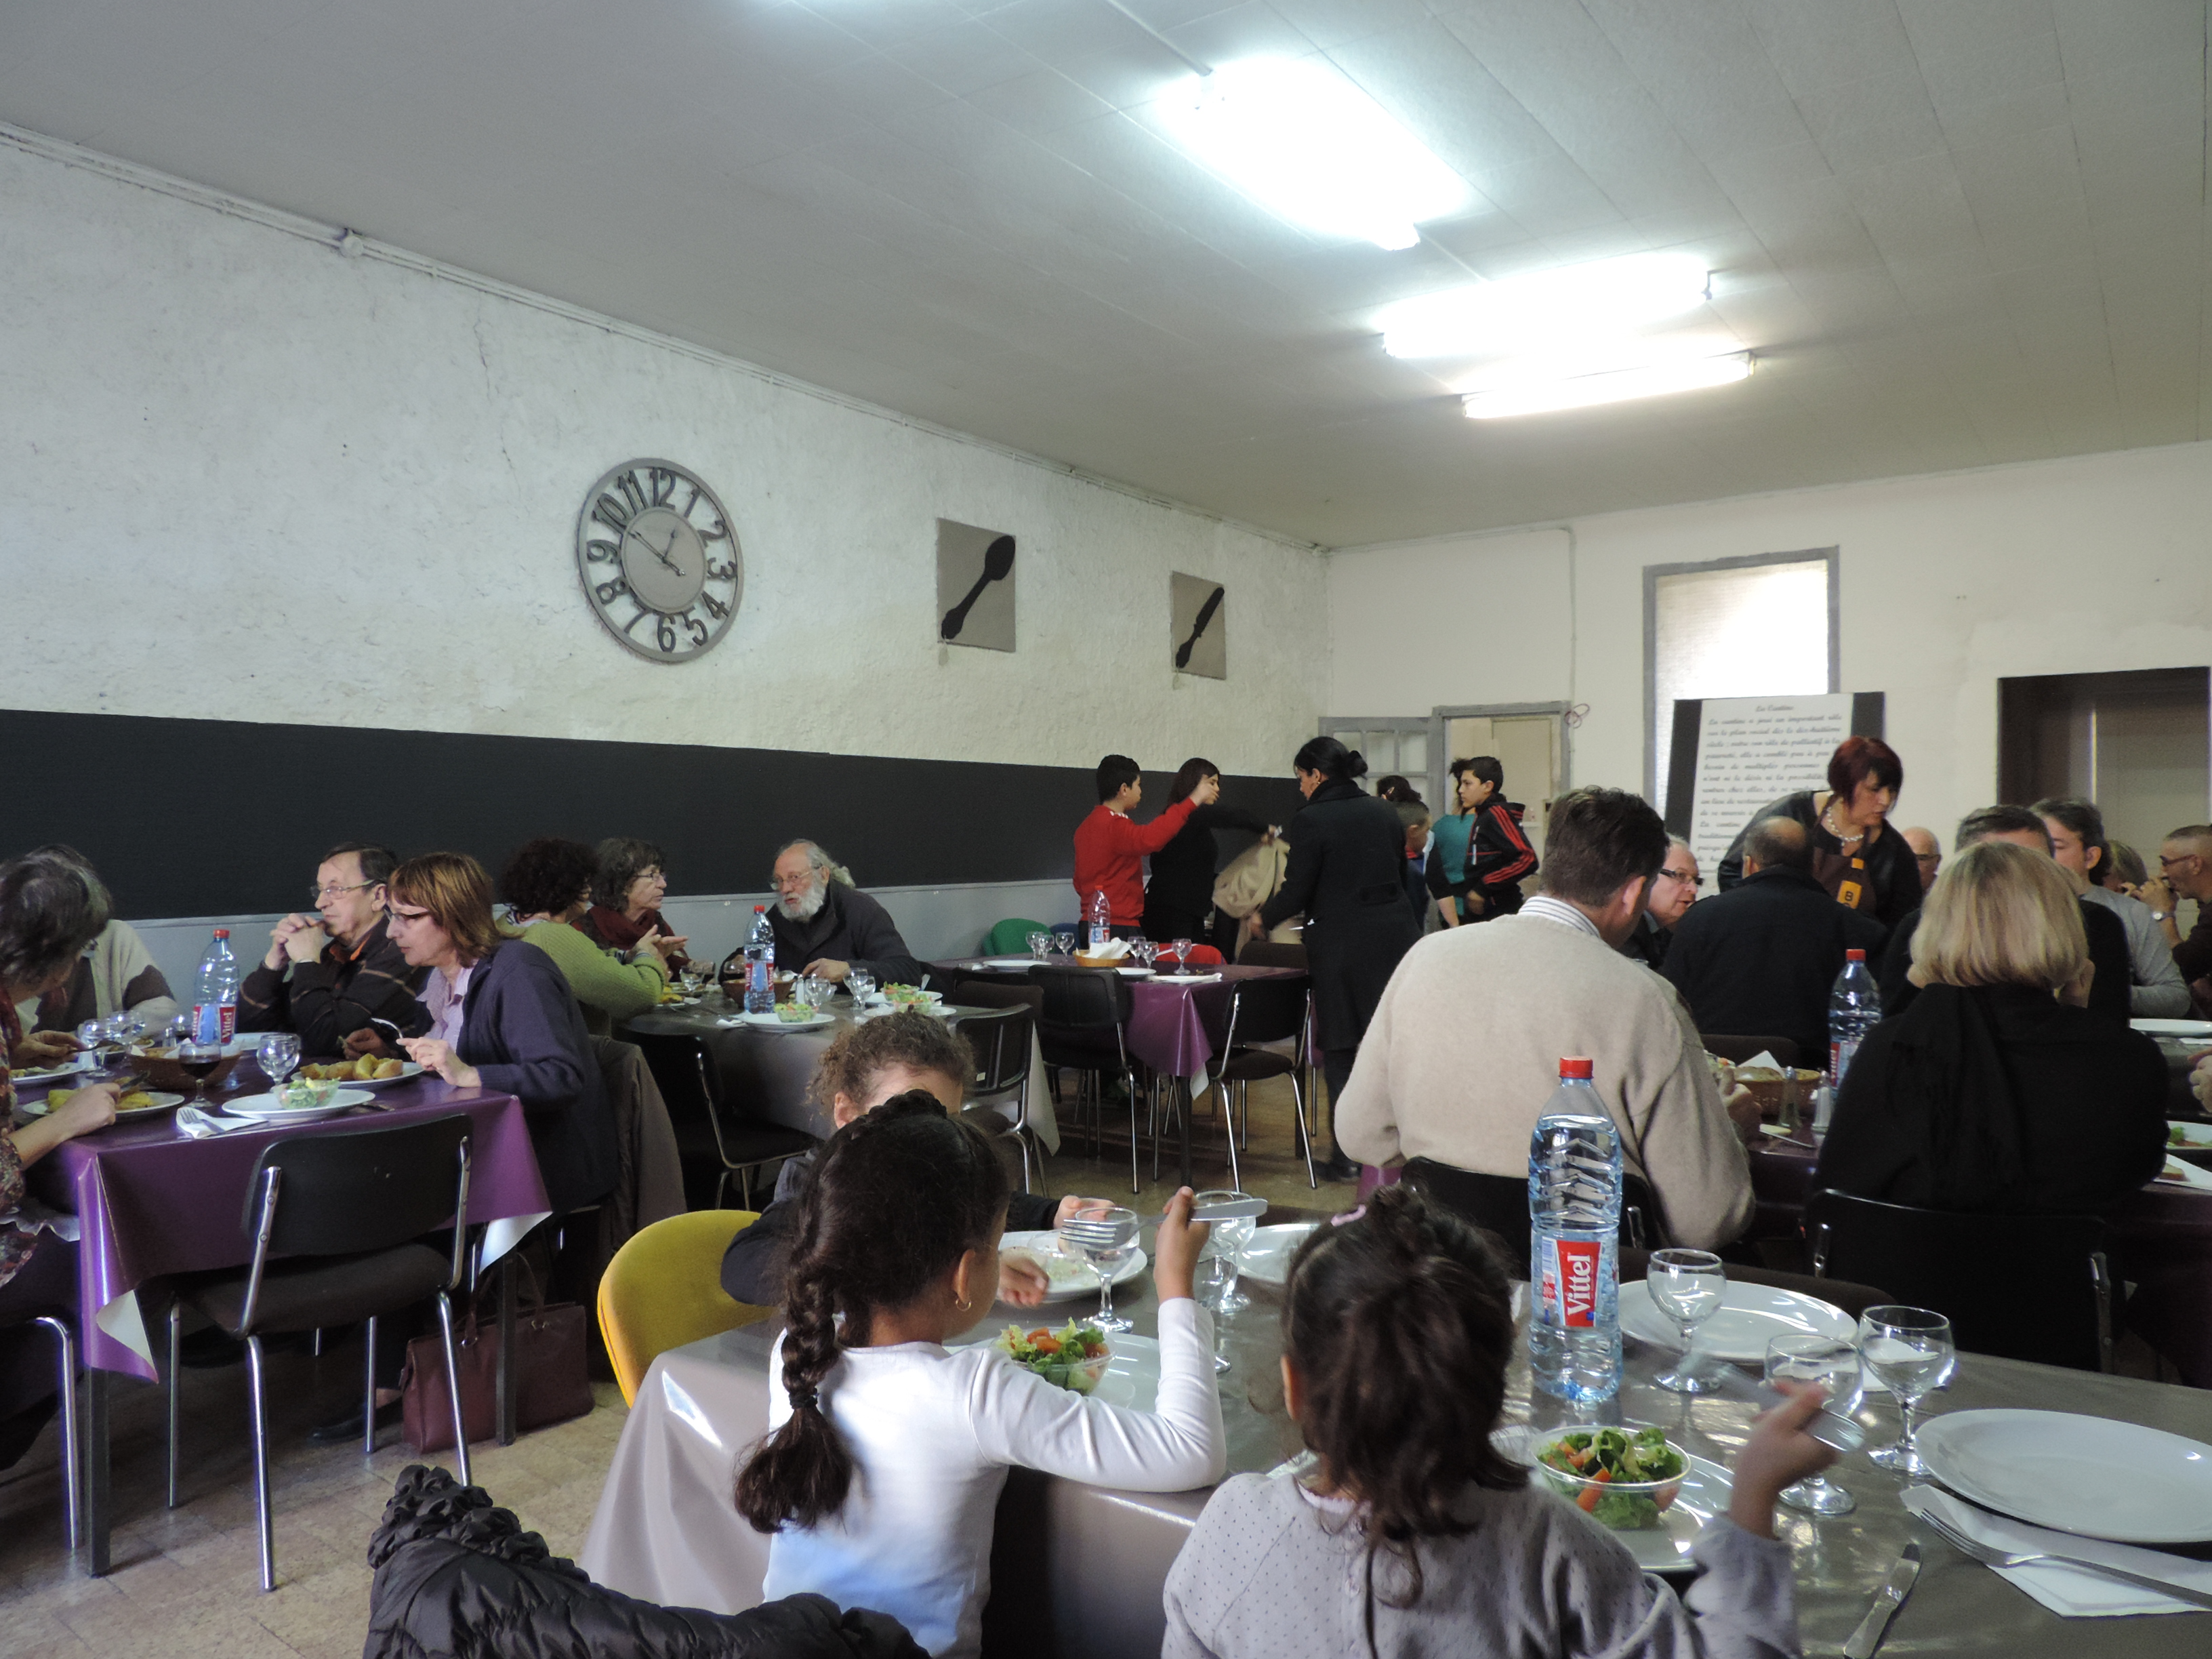 Photo of CASTILLON DU GARD 70 élèves incommodés: intoxication alimentaire à l'école?